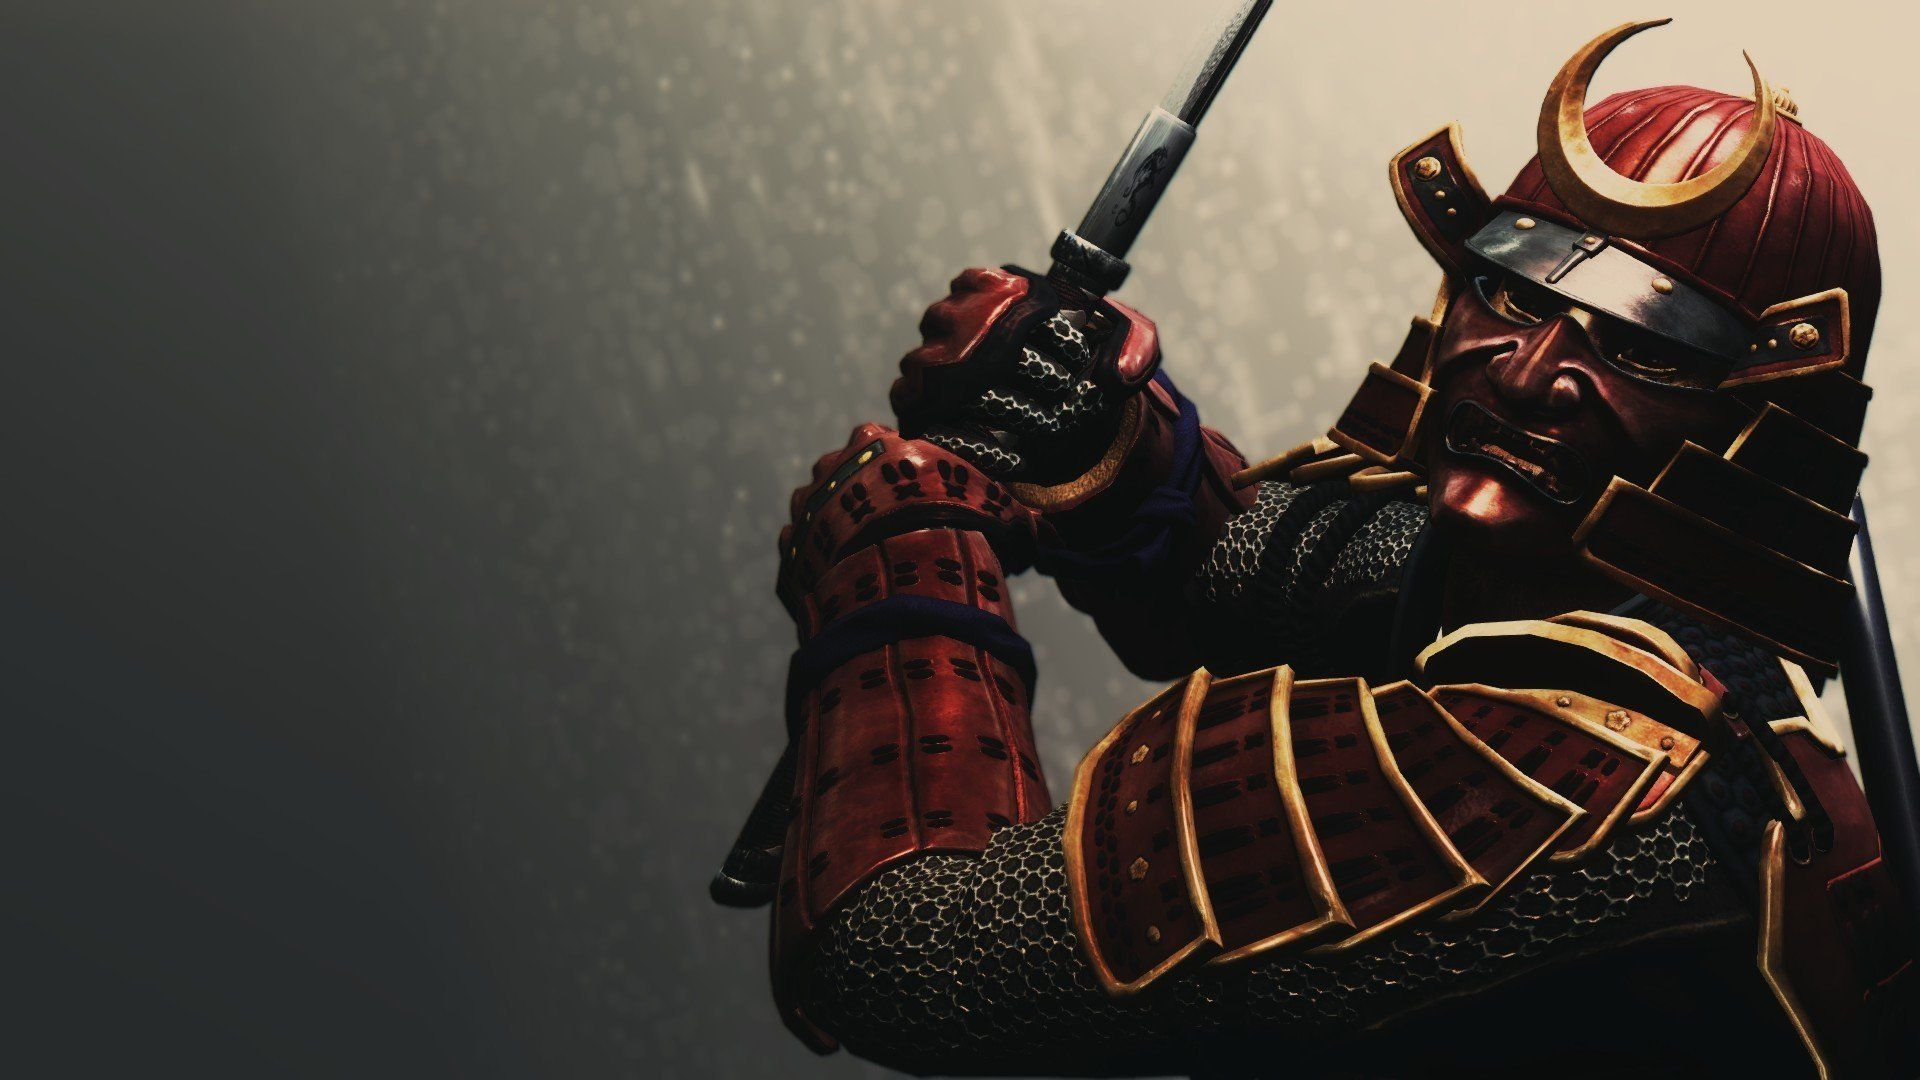 Samurai Armour Helmet Background Rendering Hd Wallpaper In